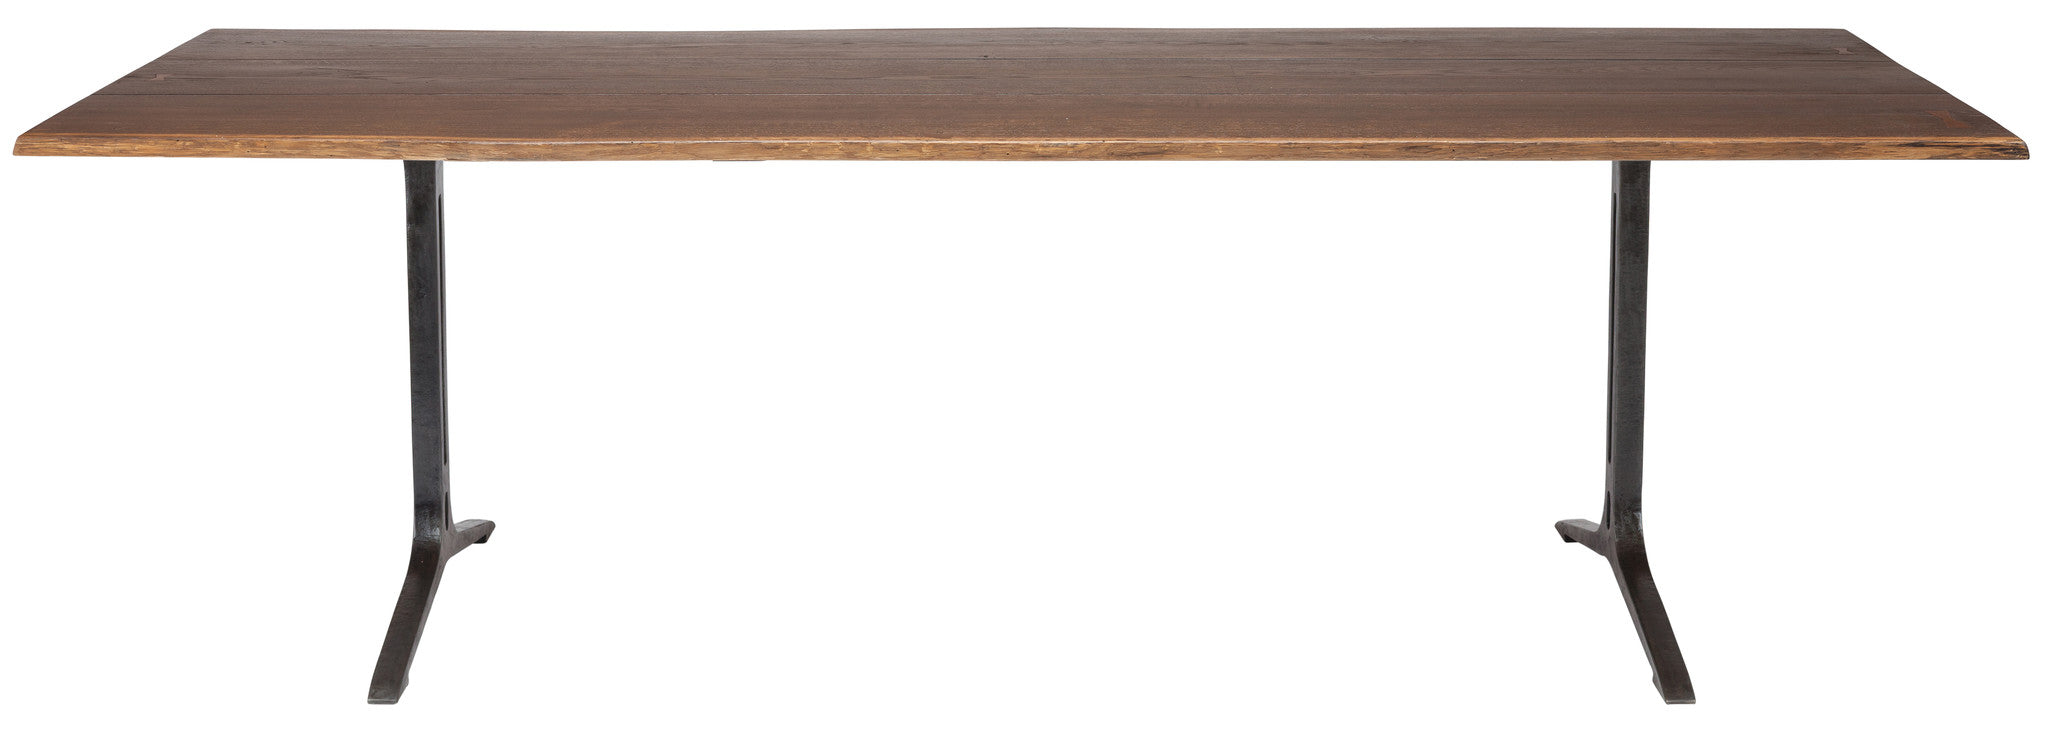 "96"" Solid Oak Conference Table with Cast Iron Legs (Seared Or Smoked)"